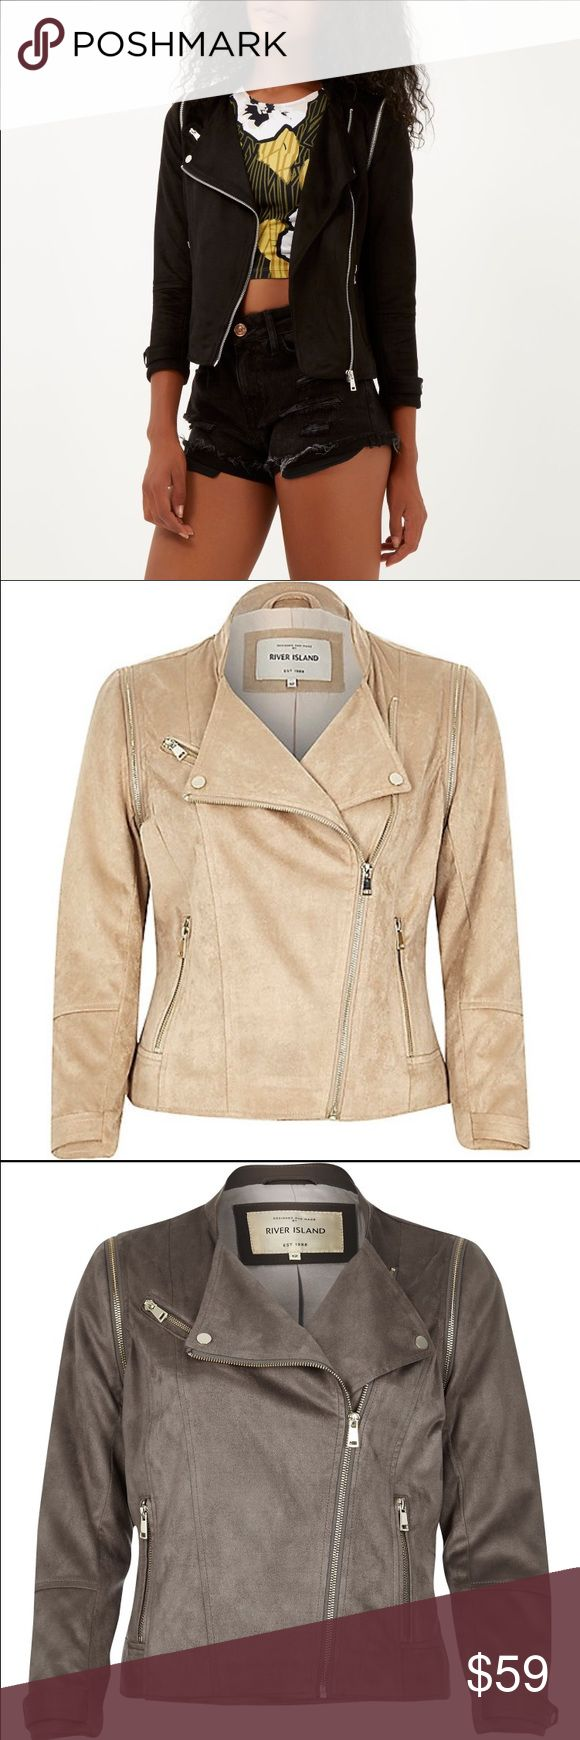 River Island faux suede biker jacket. This faux suede jacket is still on the River Island website originally retailing for $120, and marked down to $70! New without tags, never worn, US 2 UK 6. Perfect jacket to create a multitude of looks! River Island Jackets & Coats